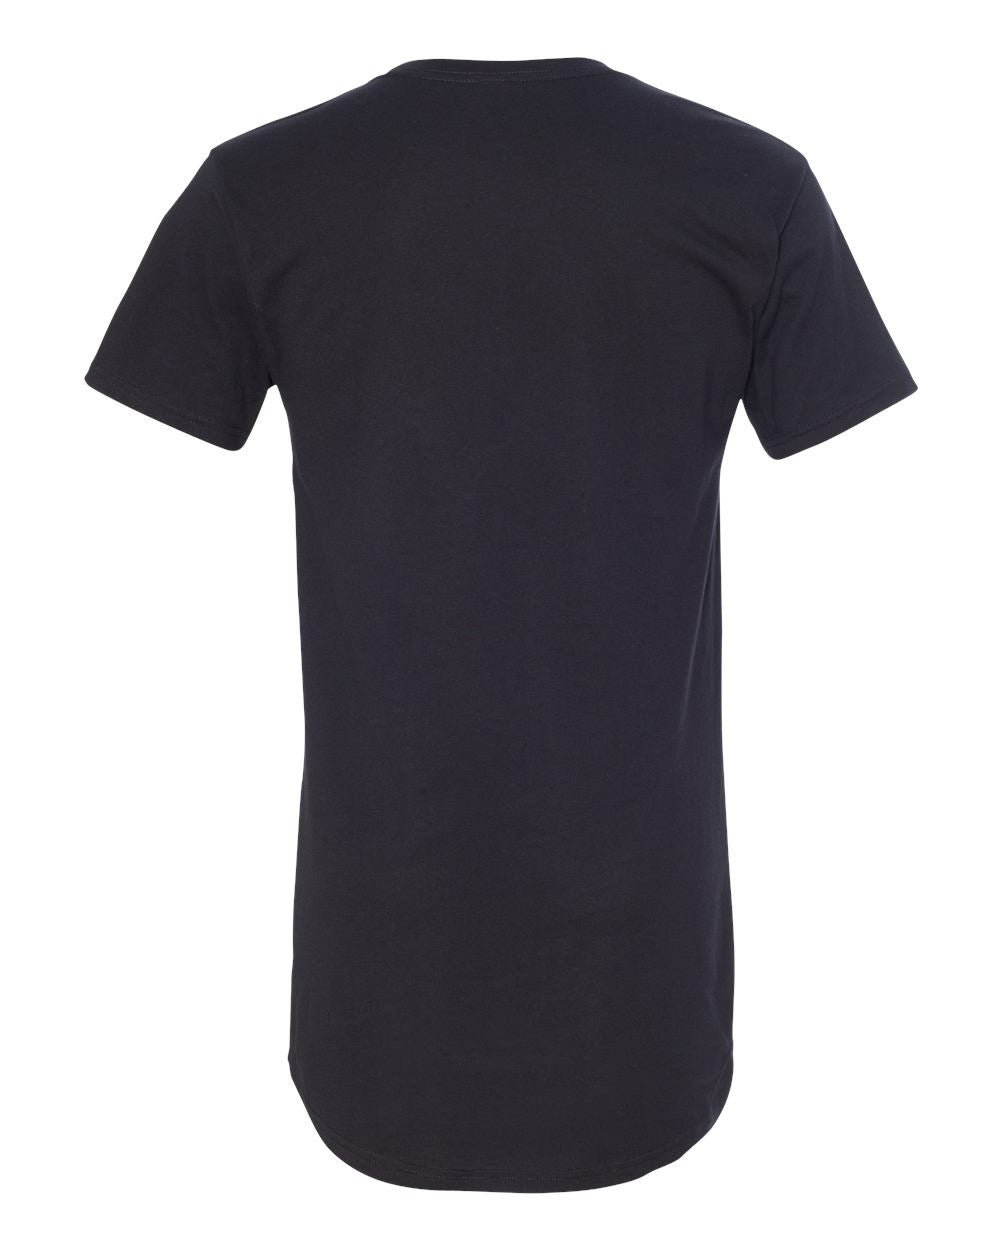 Men's Extra Long Urban Tee Shirt - Black-Don Dapper Store